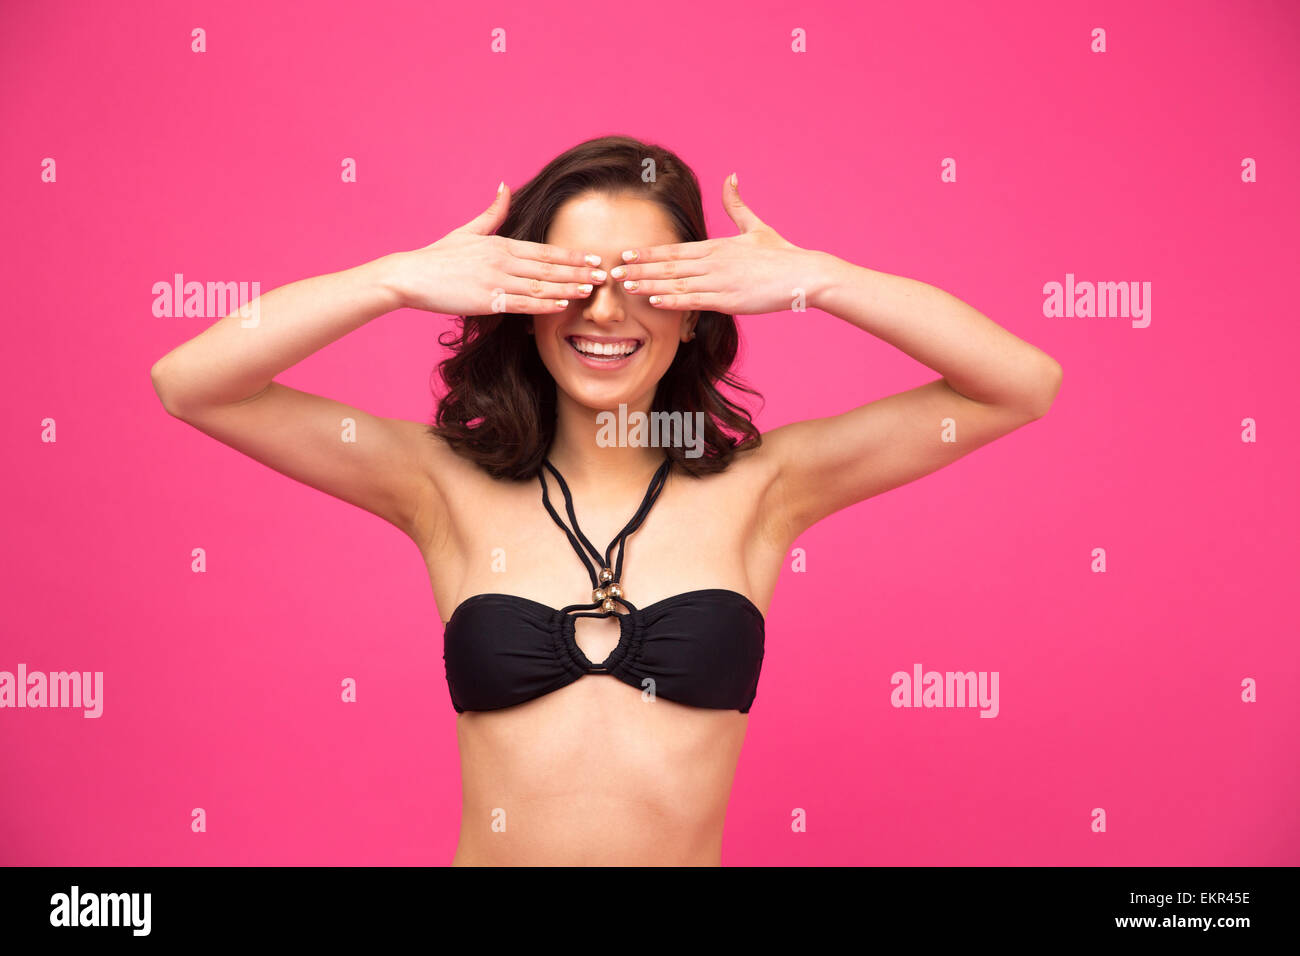 Happy young woman in black bikini covering her eyes over pink background - Stock Image